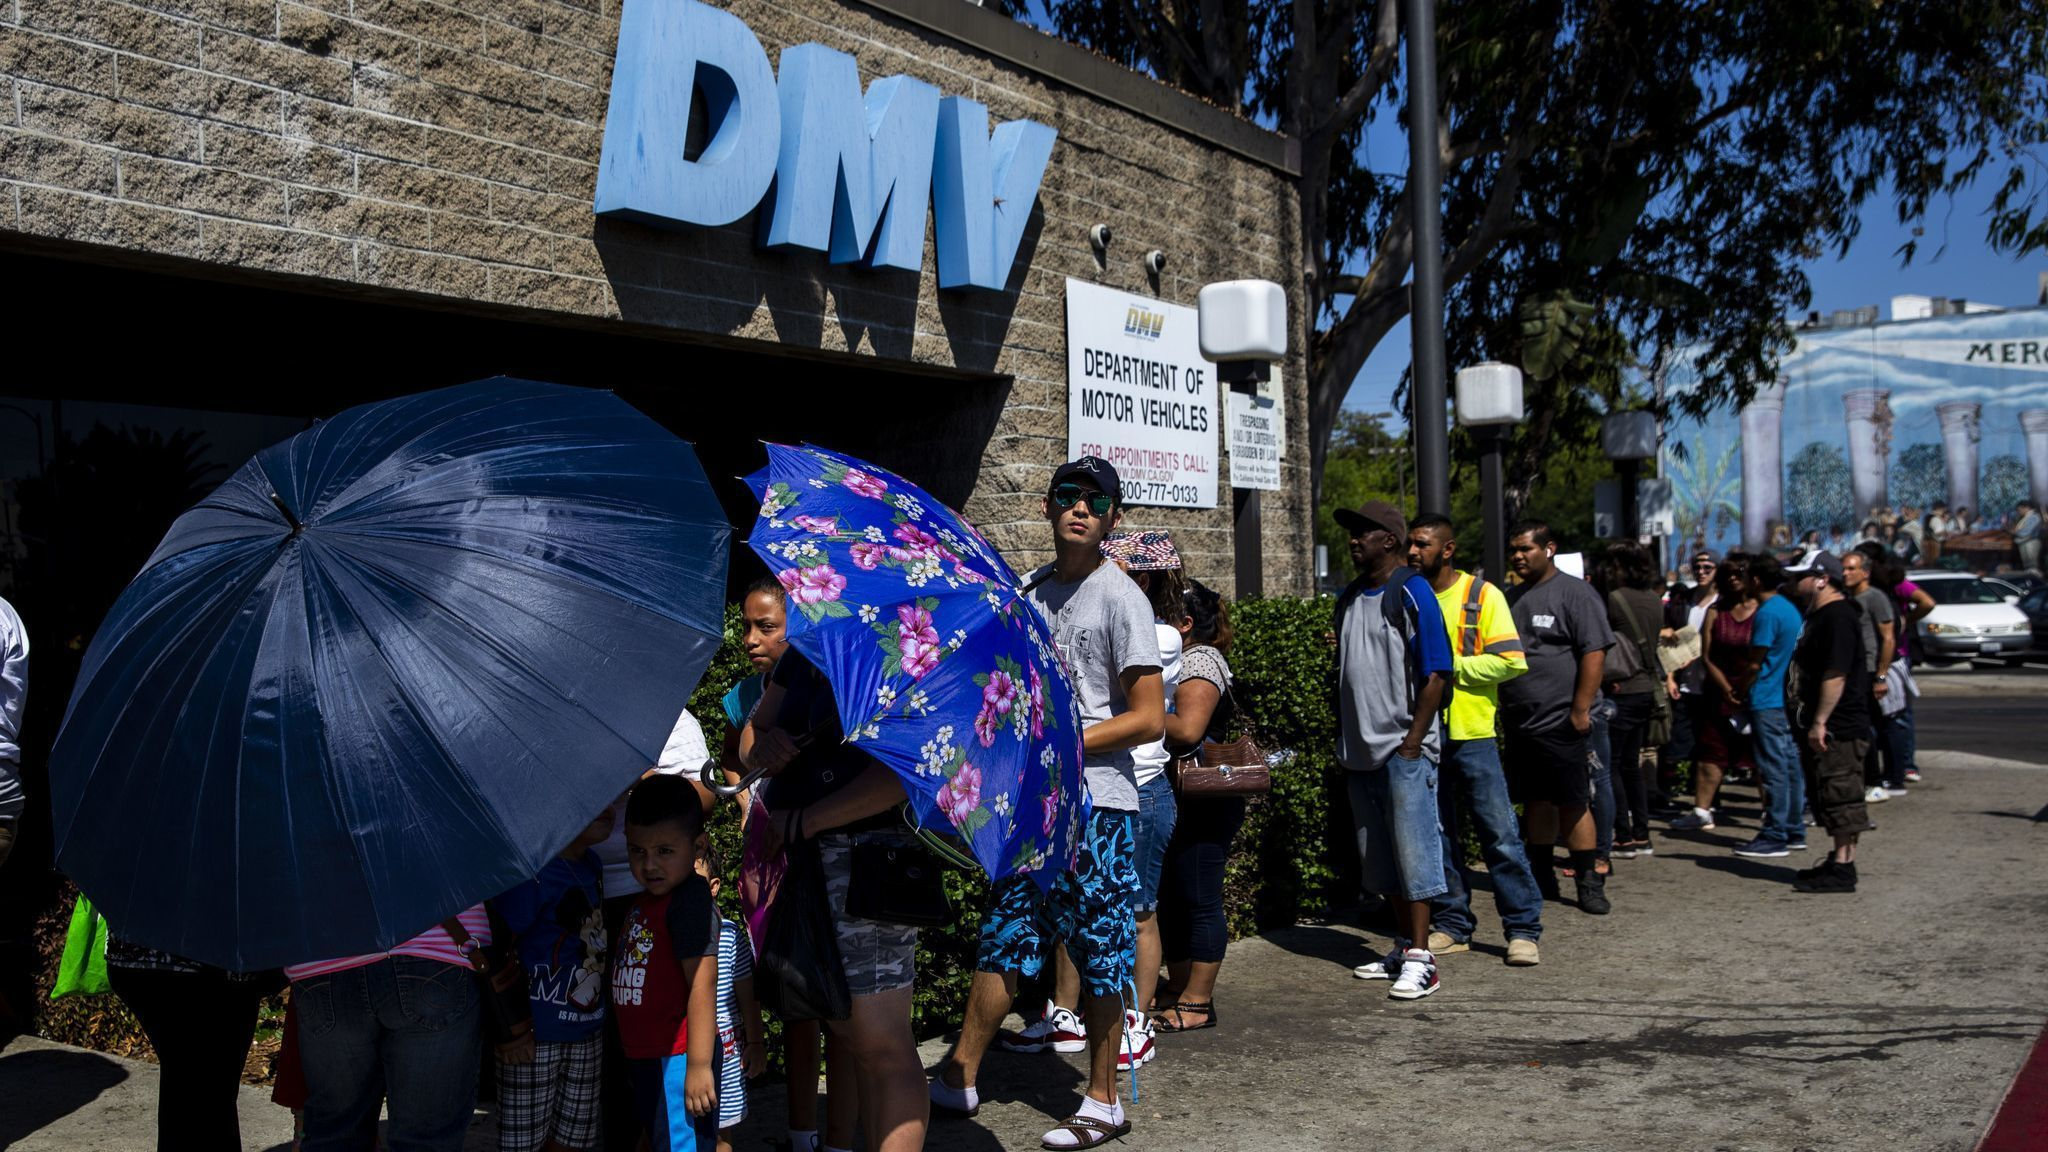 California lawmakers grill DMV official over ballooning wait times